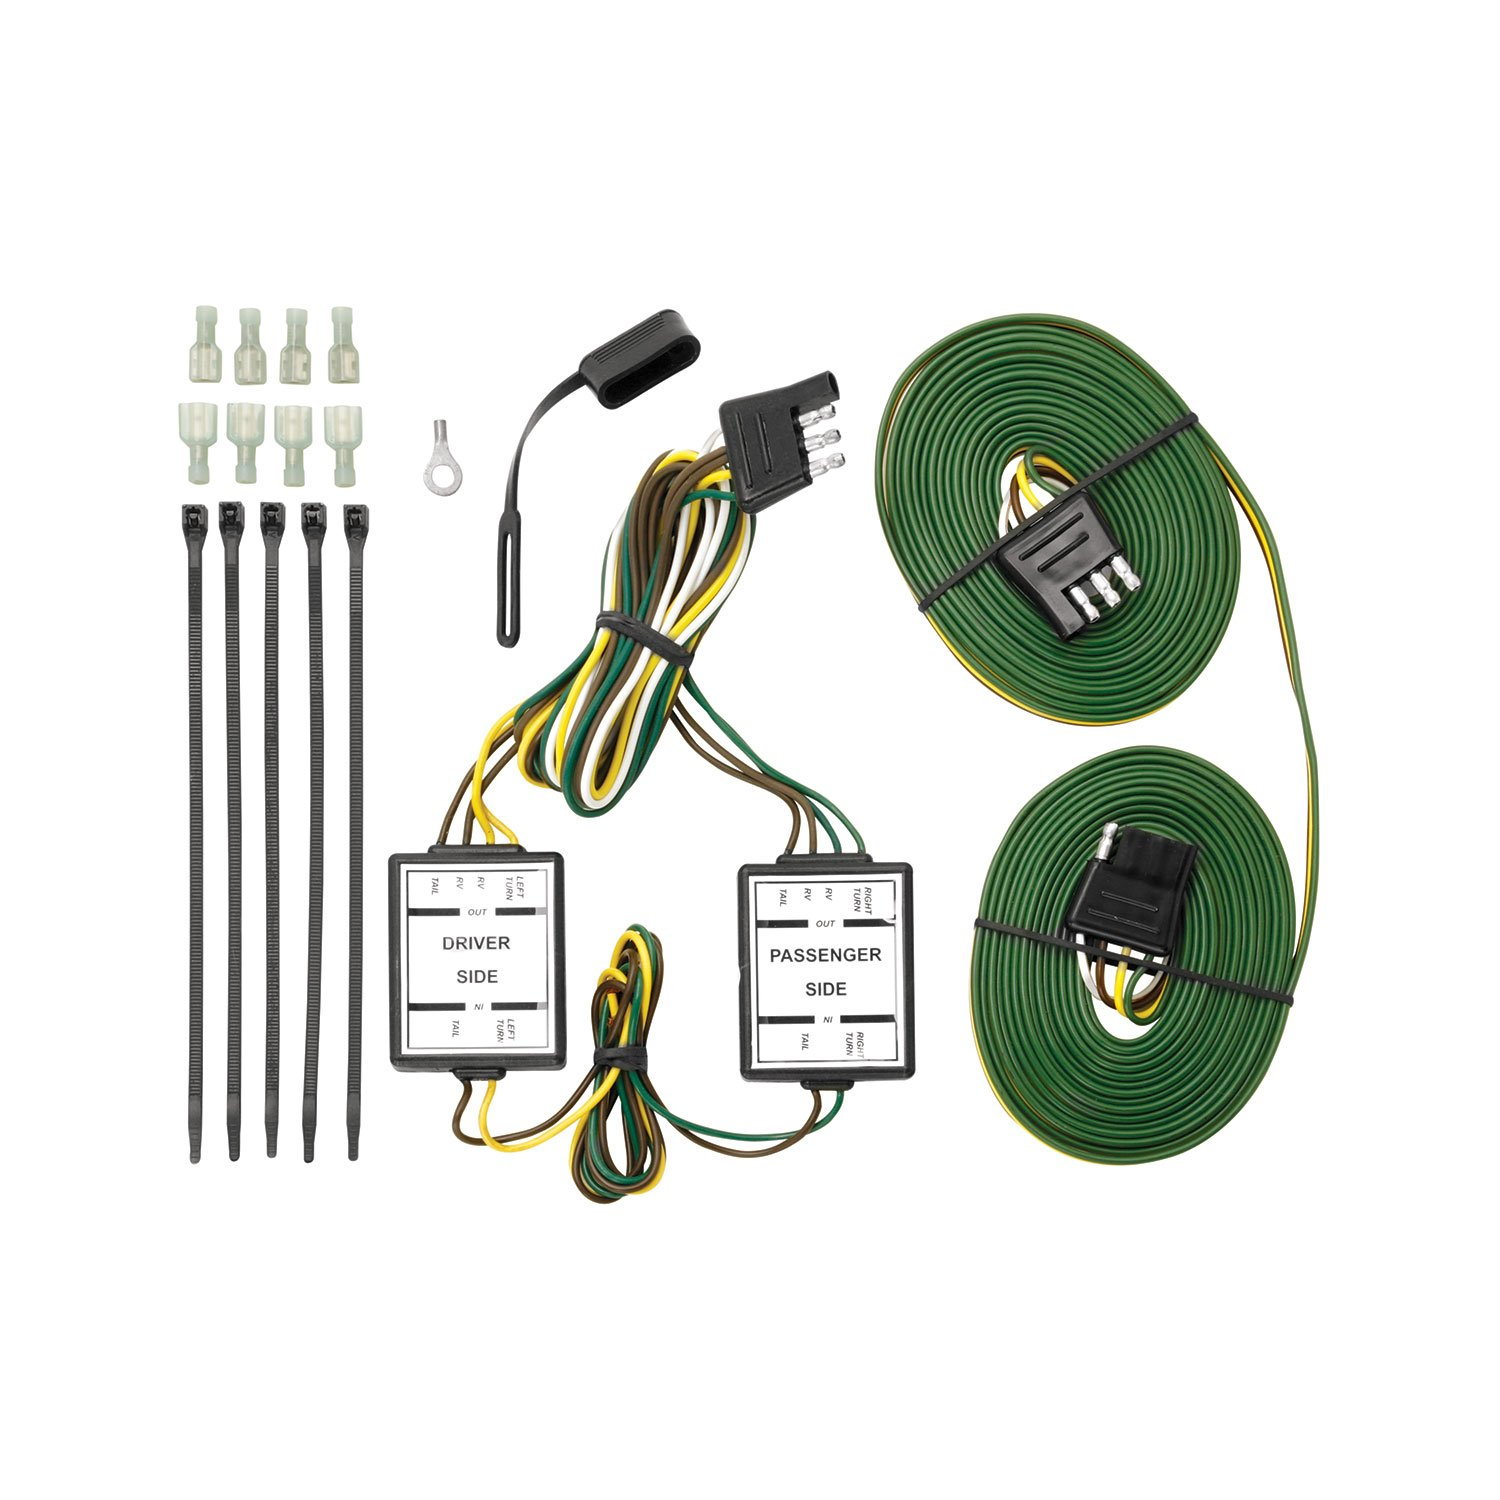 Tekonsha 118821 Taillight Isolating System with 4-Flat